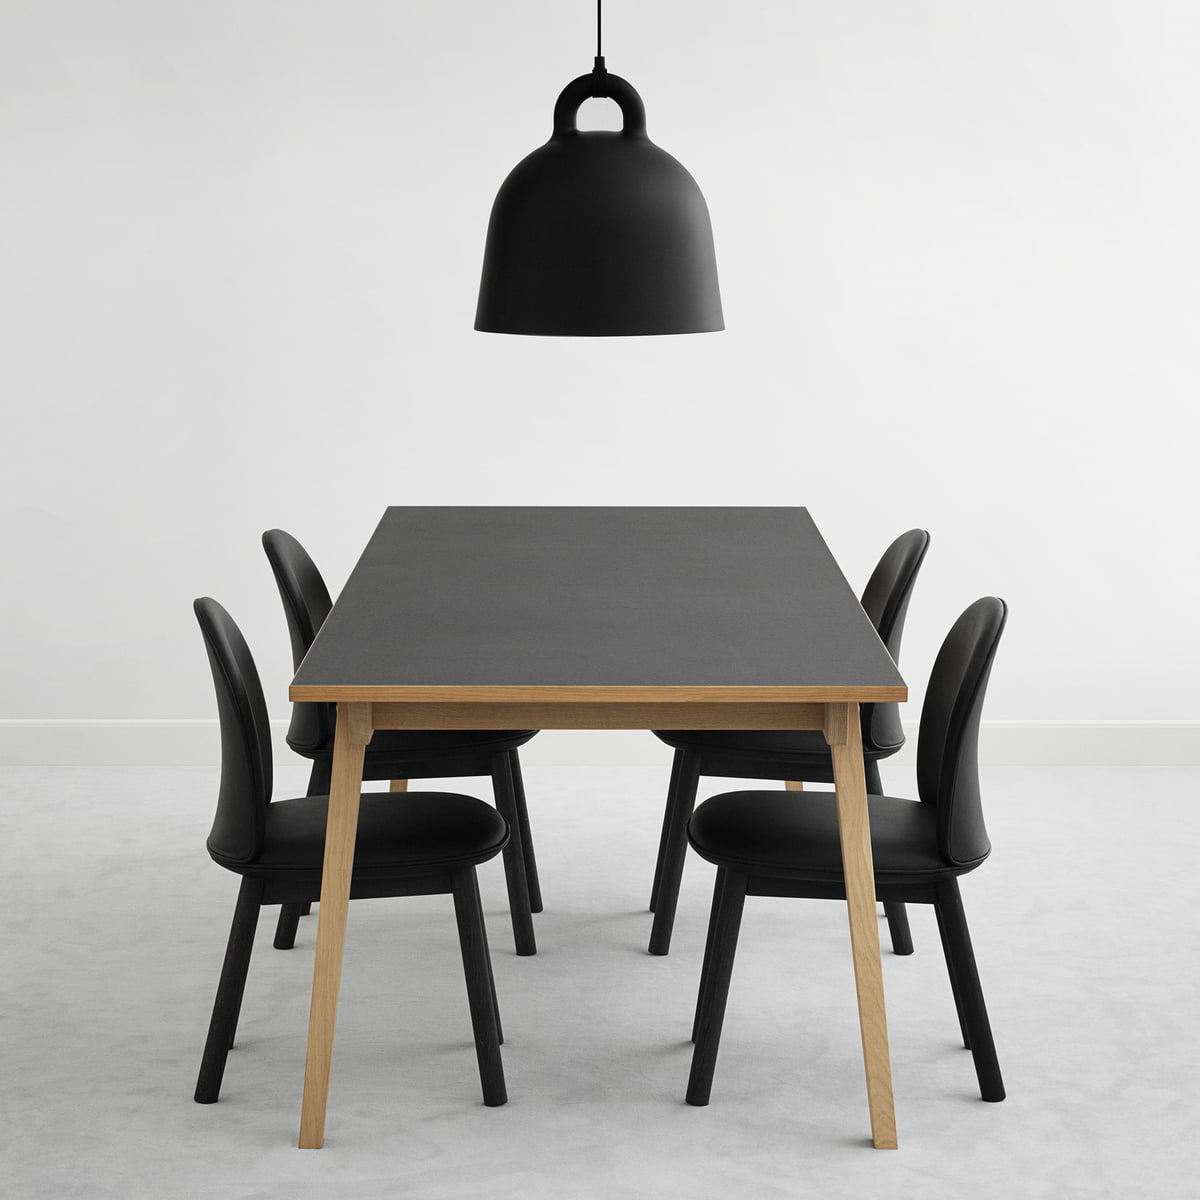 Hochwertig Ace Chair Leather And Slice Table Linoleum With Bell Pendant Lamp